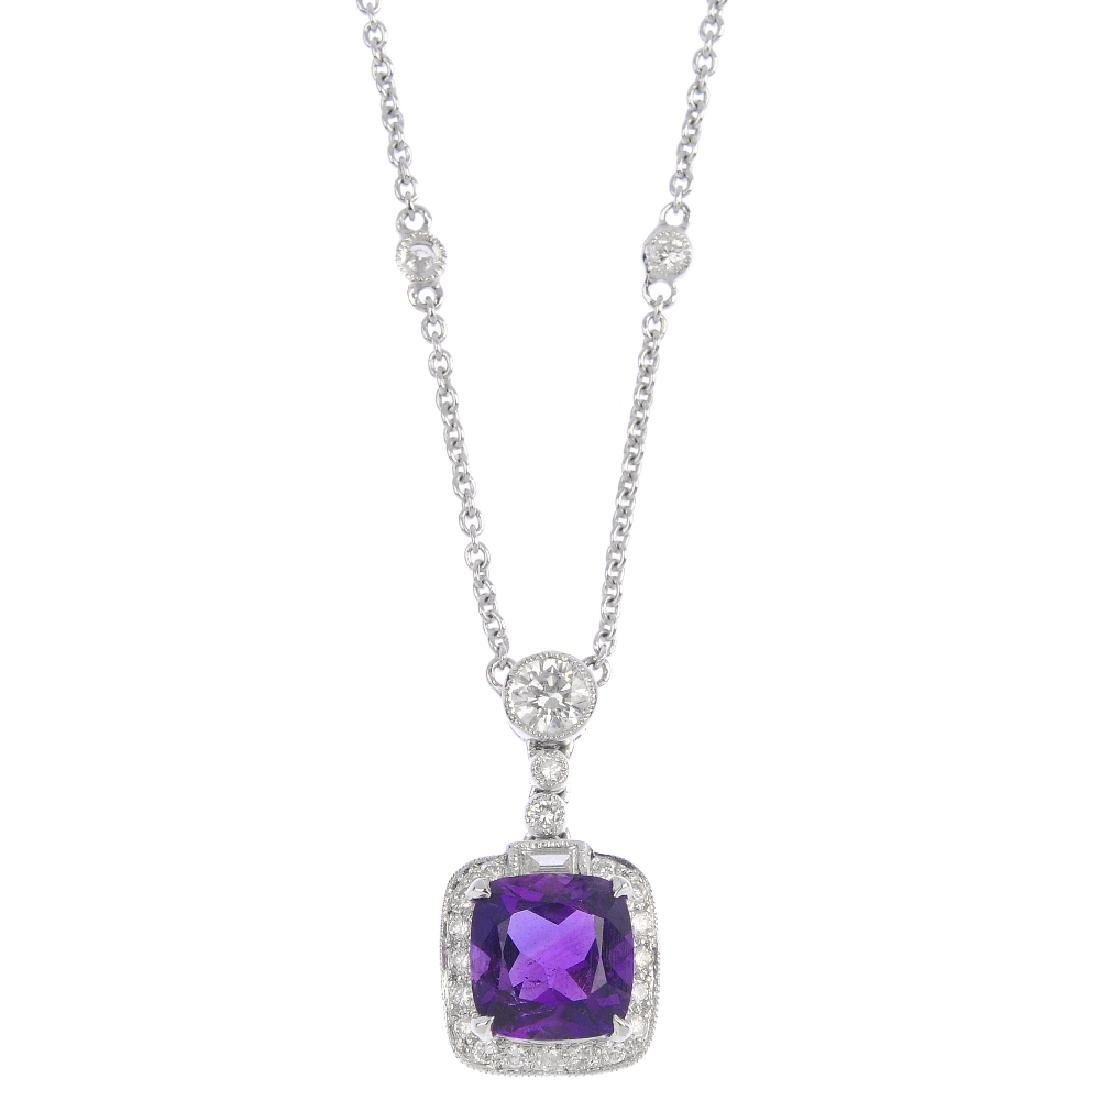 An 18ct gold amethyst and diamond pendant. The